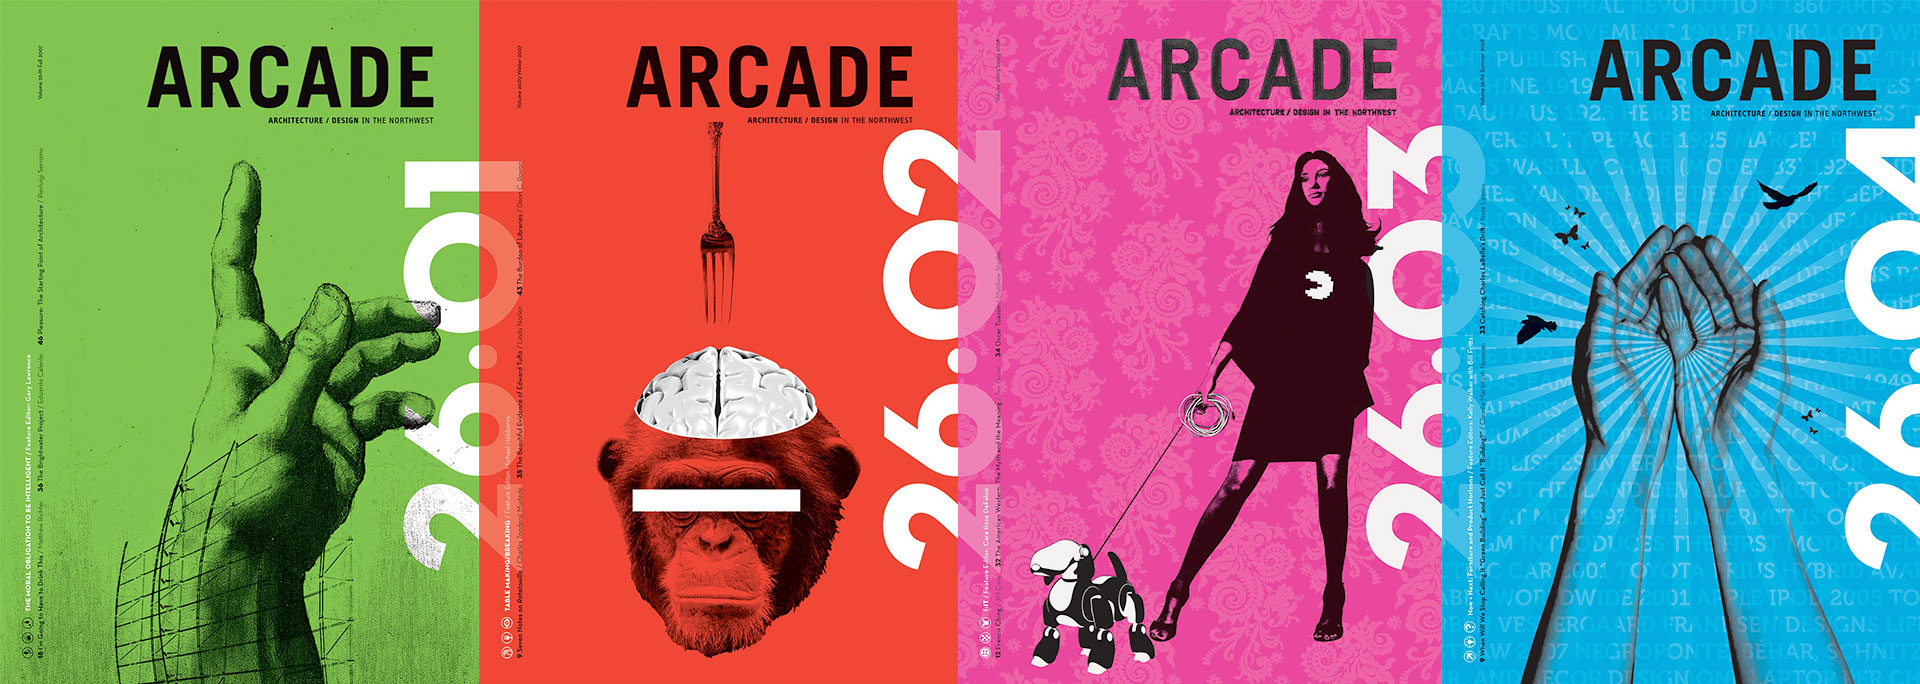 ARCADE-Volume-Covers